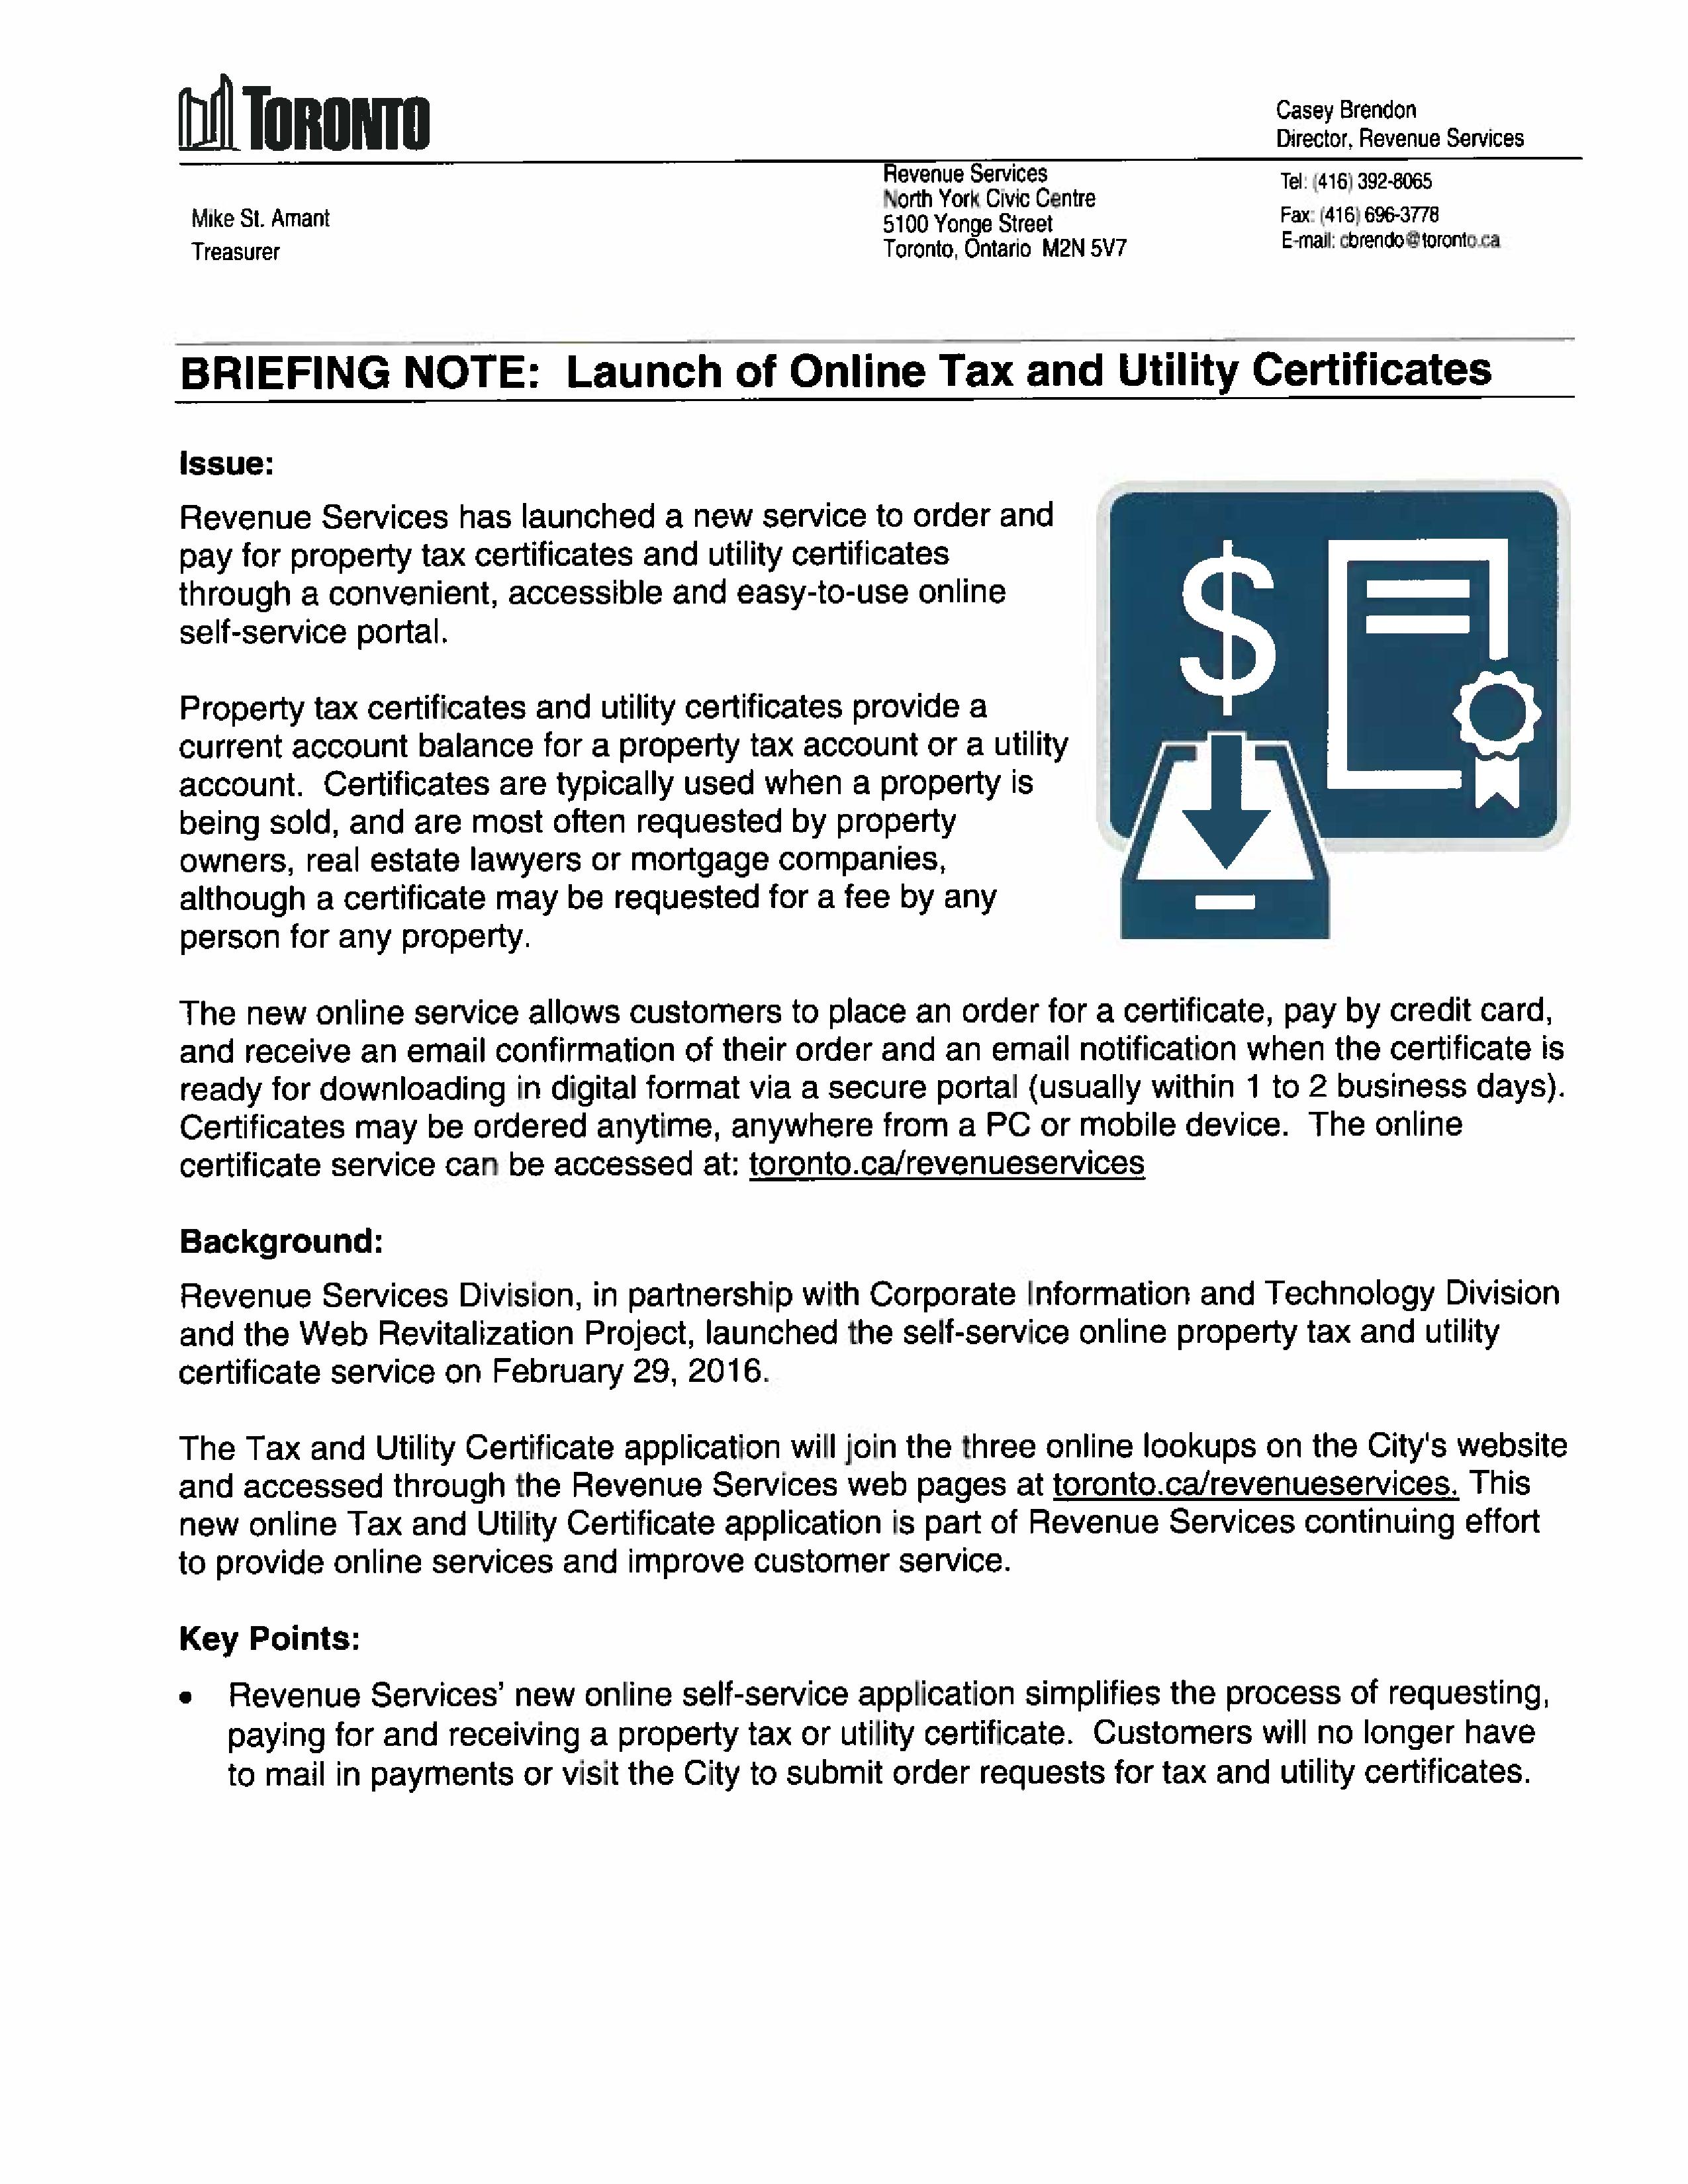 Online tax and utility certificate service deputy mayor denzil online tax and utility certificate service deputy mayor denzil minnan wong xflitez Gallery